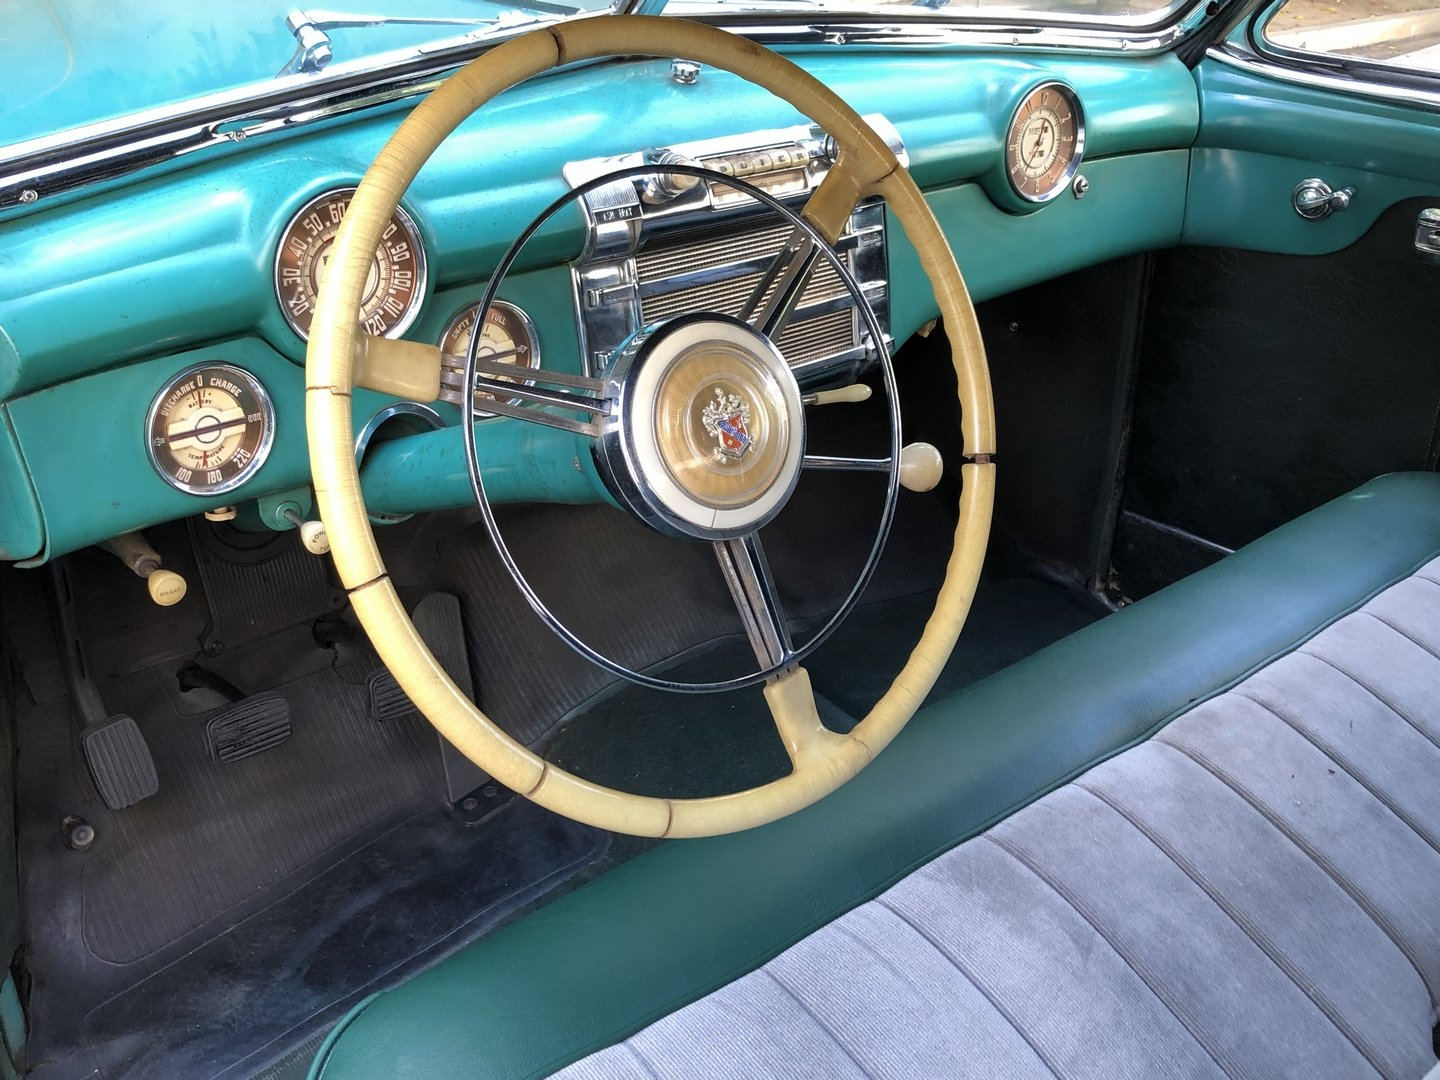 1947 BUICK SUPER 56-C CONVERTIBLE For Sale (picture 3 of 6)